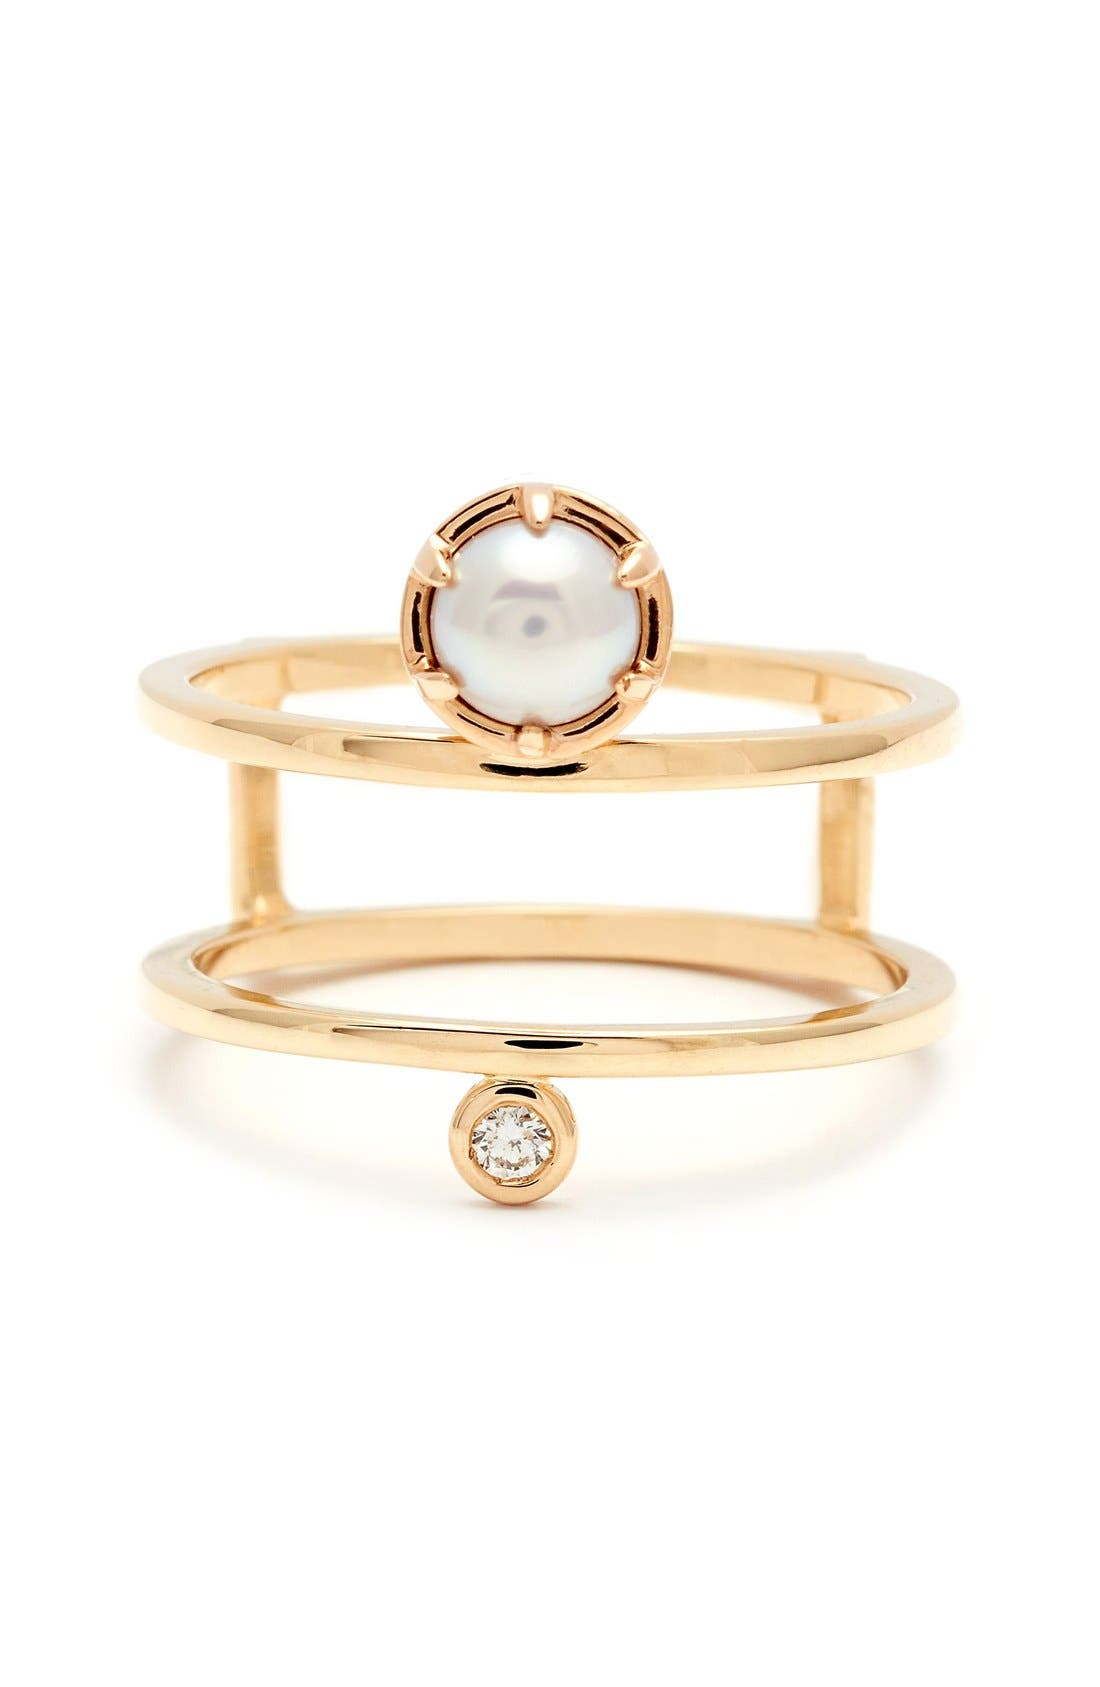 Main Image - Anna Sheffield 'Reverse Attelage' Double Band Pearl & Diamond Ring